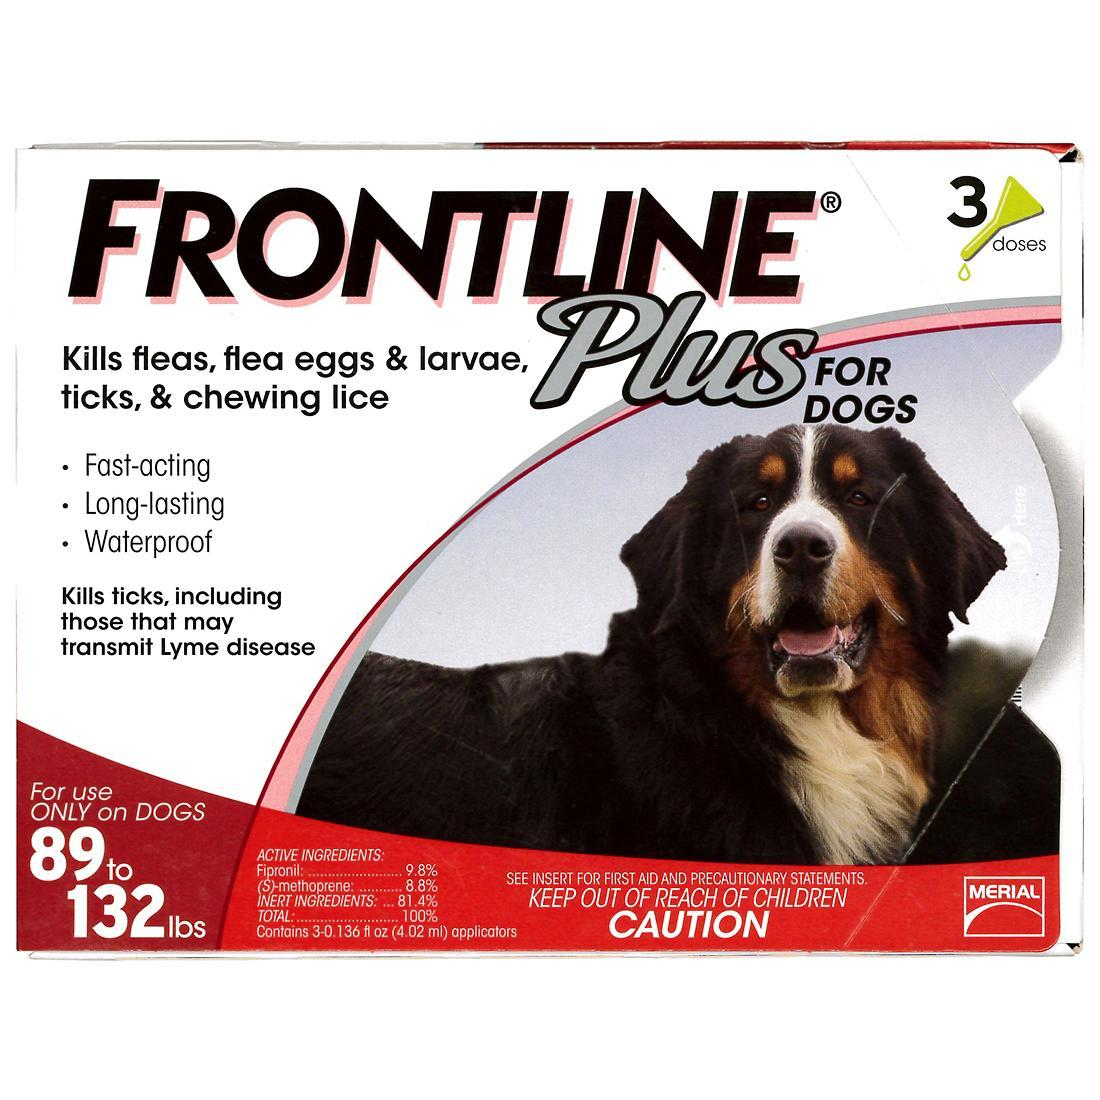 FRONTLINE Plus Flea & Tick Treatment for Dogs (89-132 pounds) Image